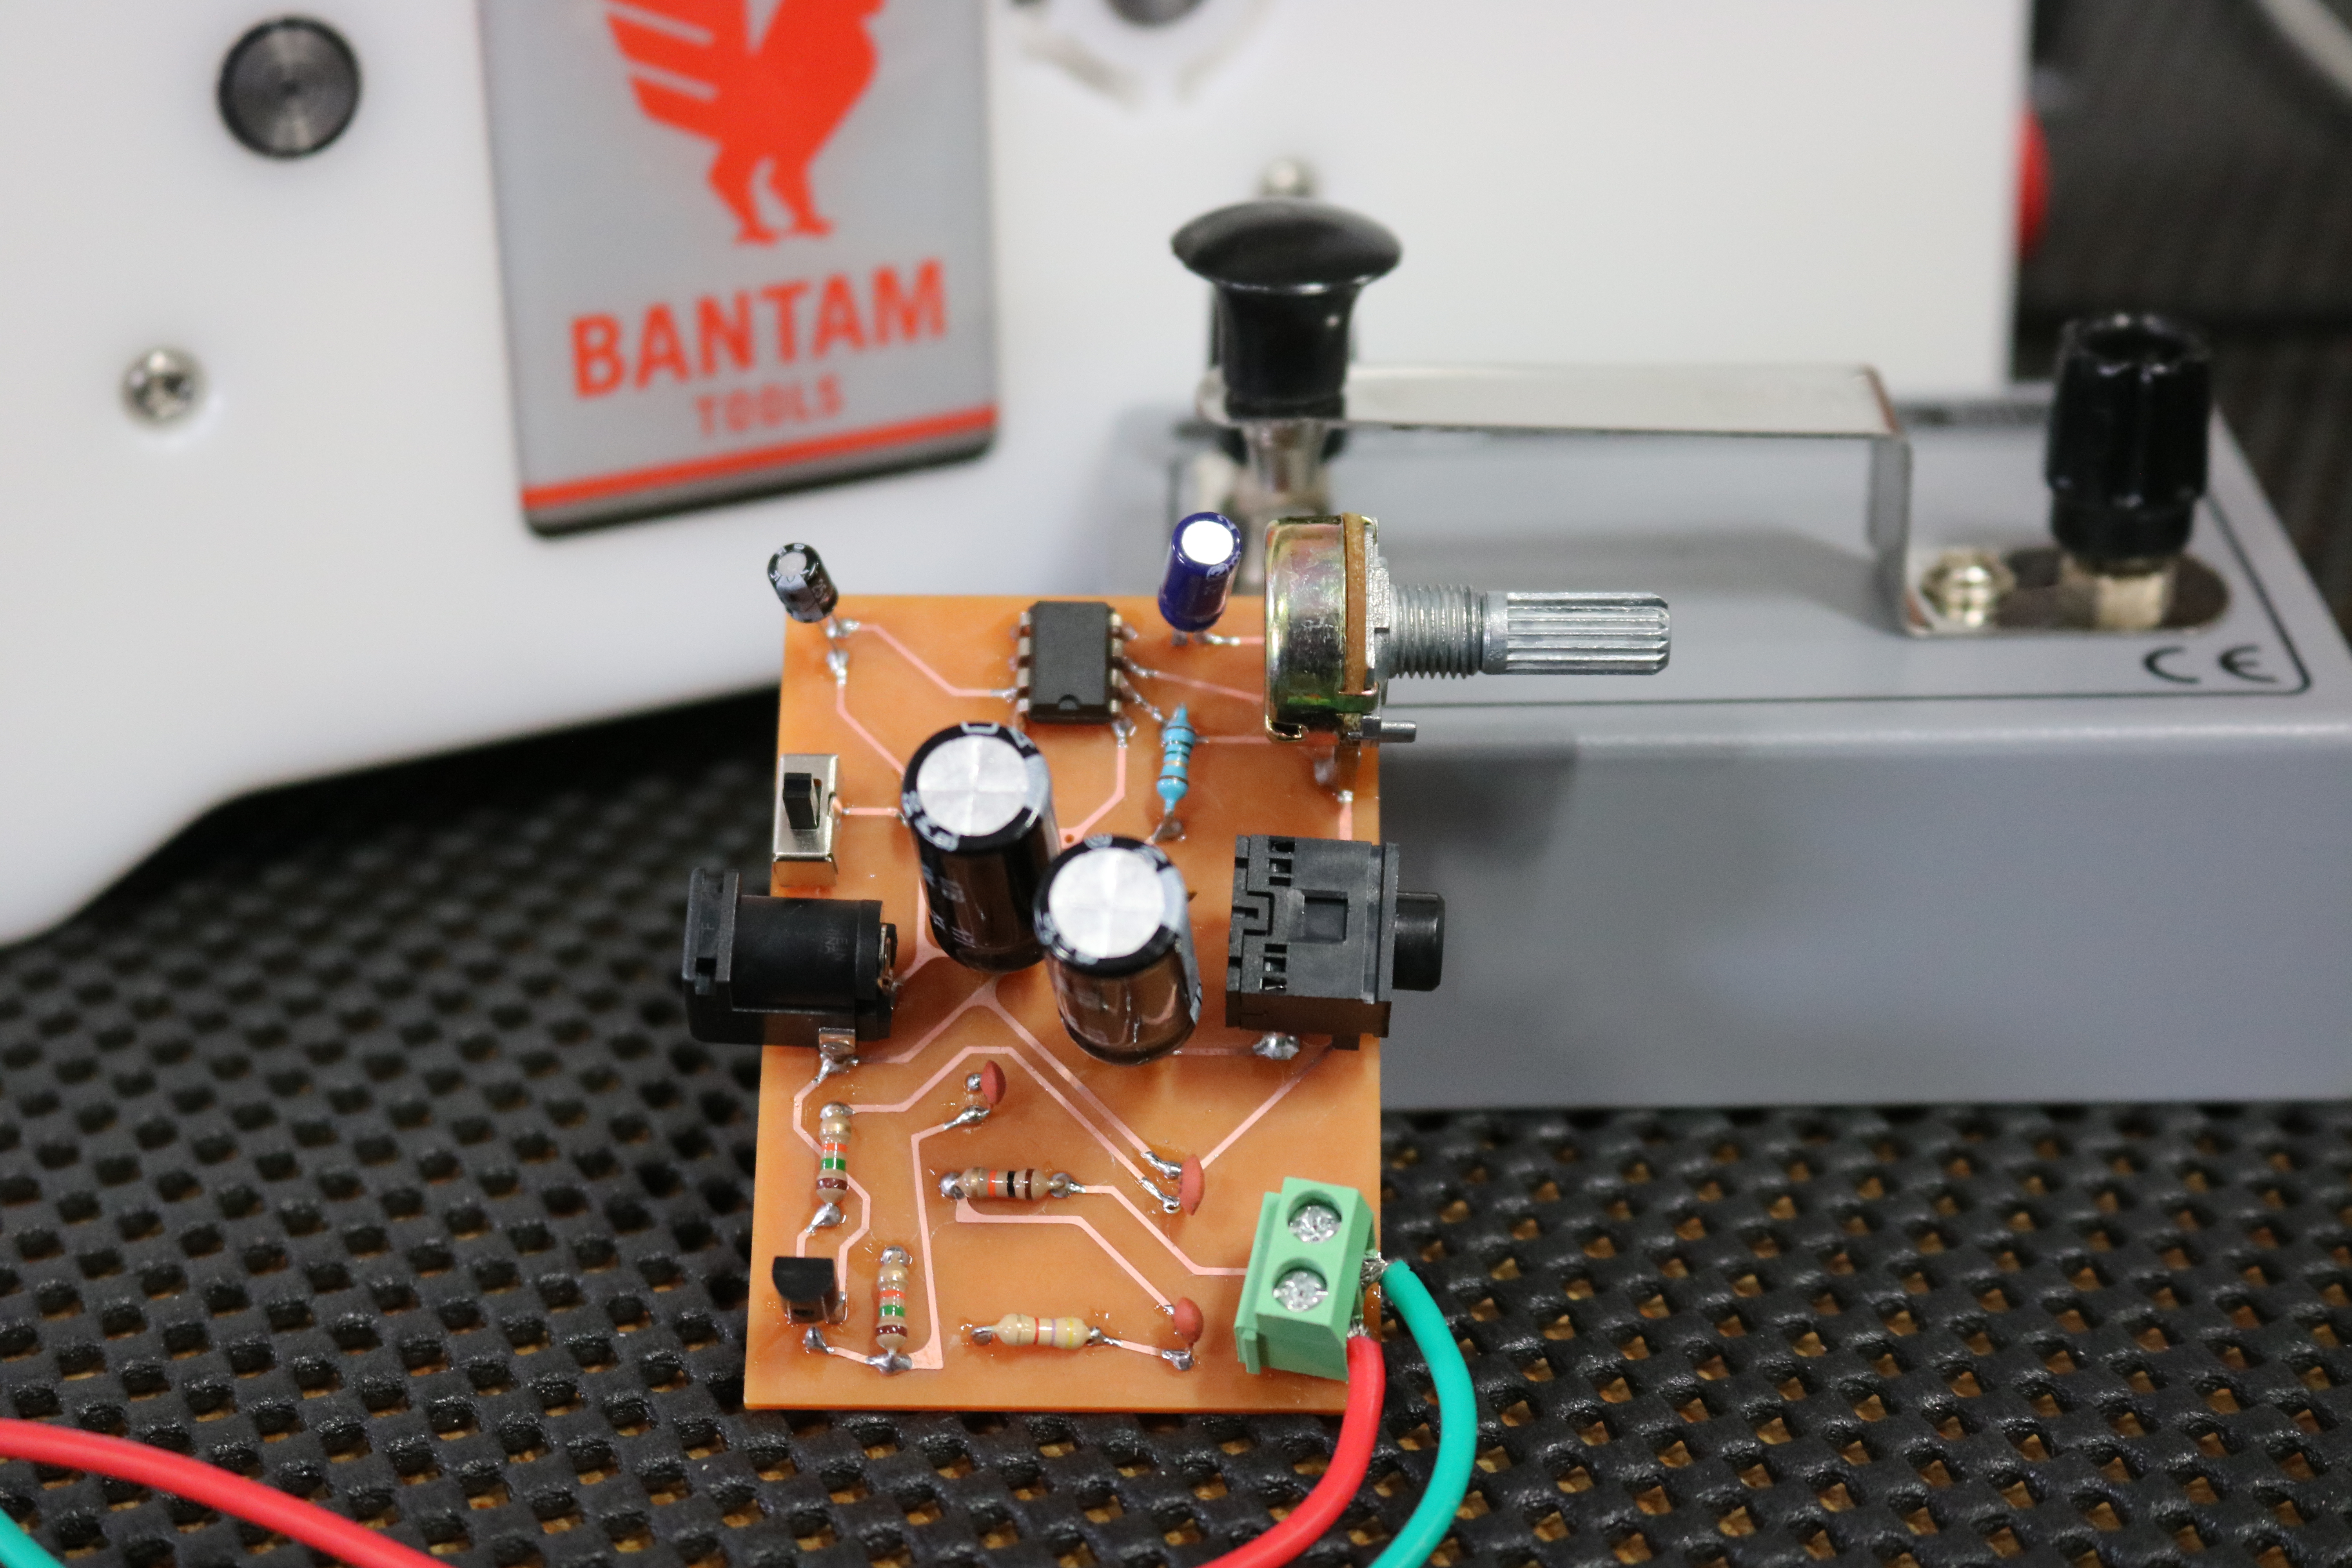 Morse Code Practice Oscillator Bantam Tools Pcb 101 How To Build A Circuit Board We Start By Milling Out Double Sided On The Desktop Machine Then Solder Series Of Components And Finally Test Our